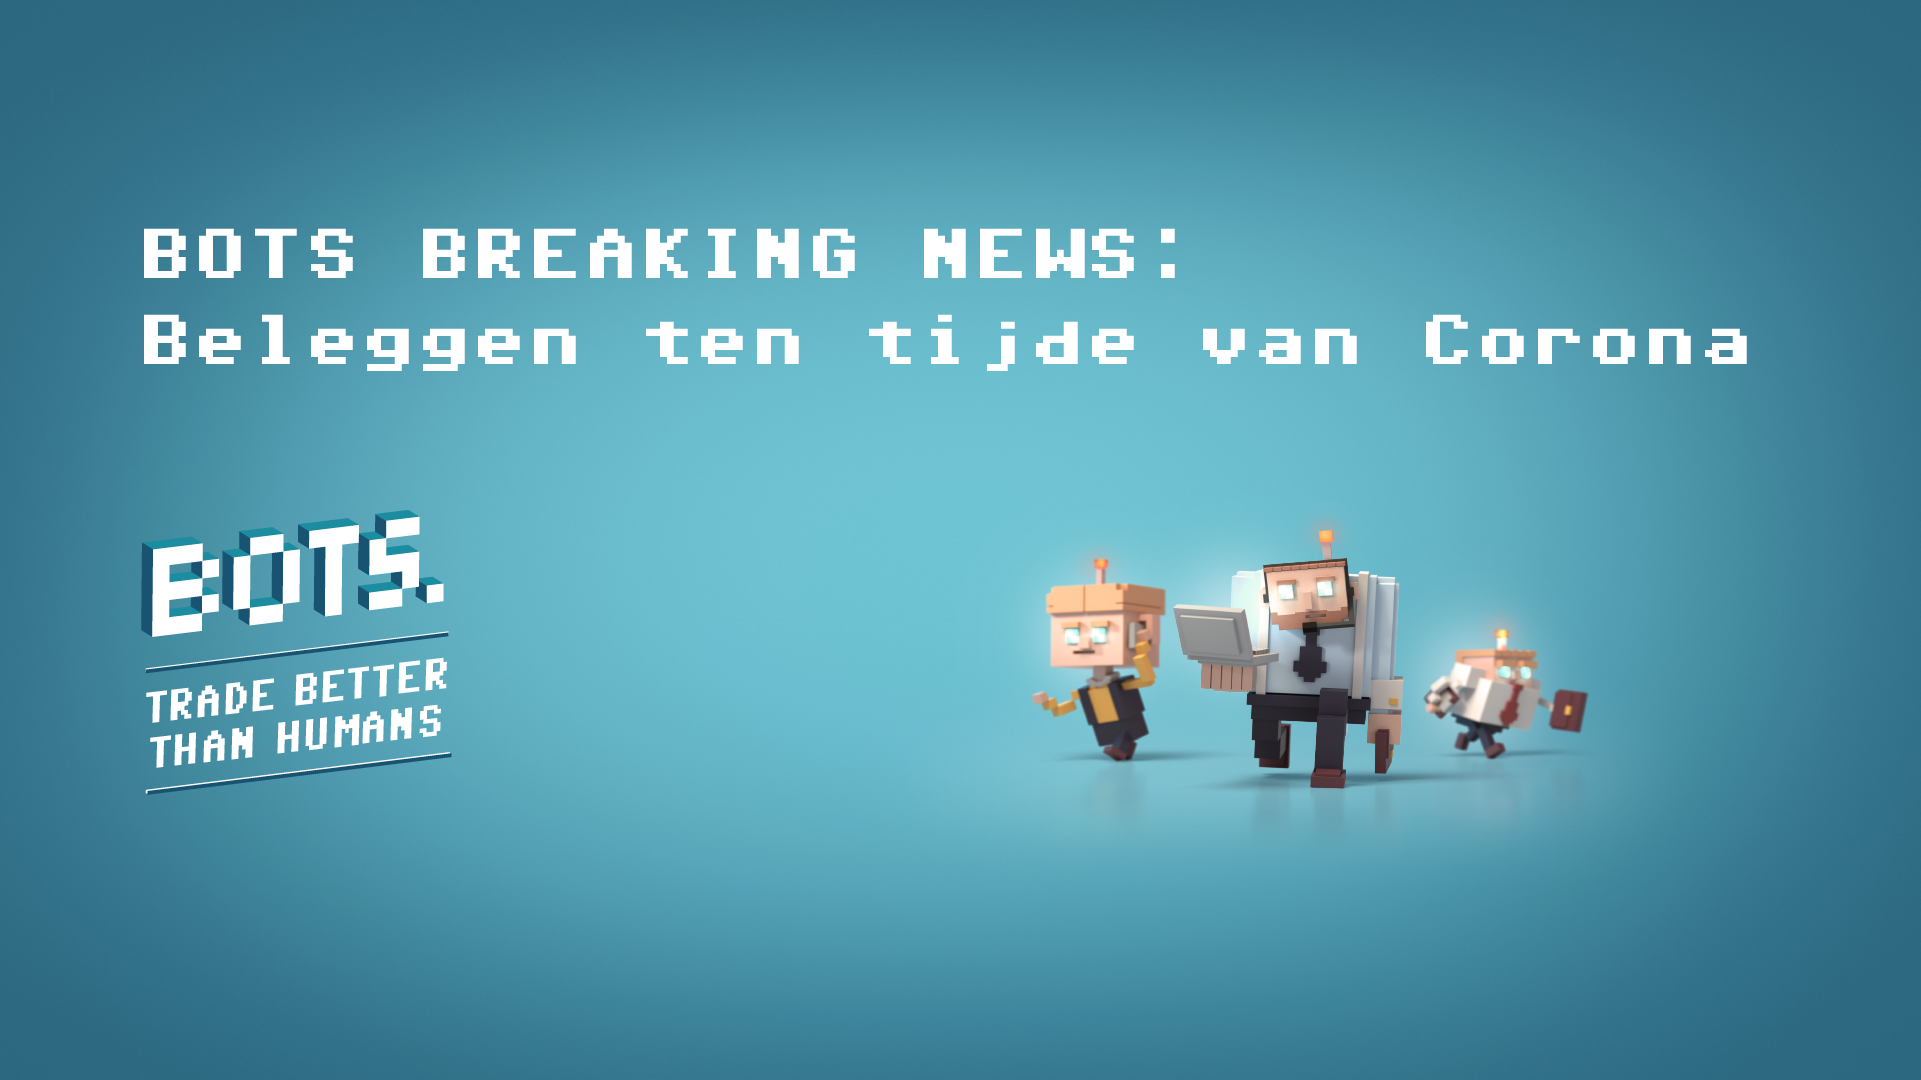 BOTS BREAKING NEWS: Beleggen ten tijde van Corona